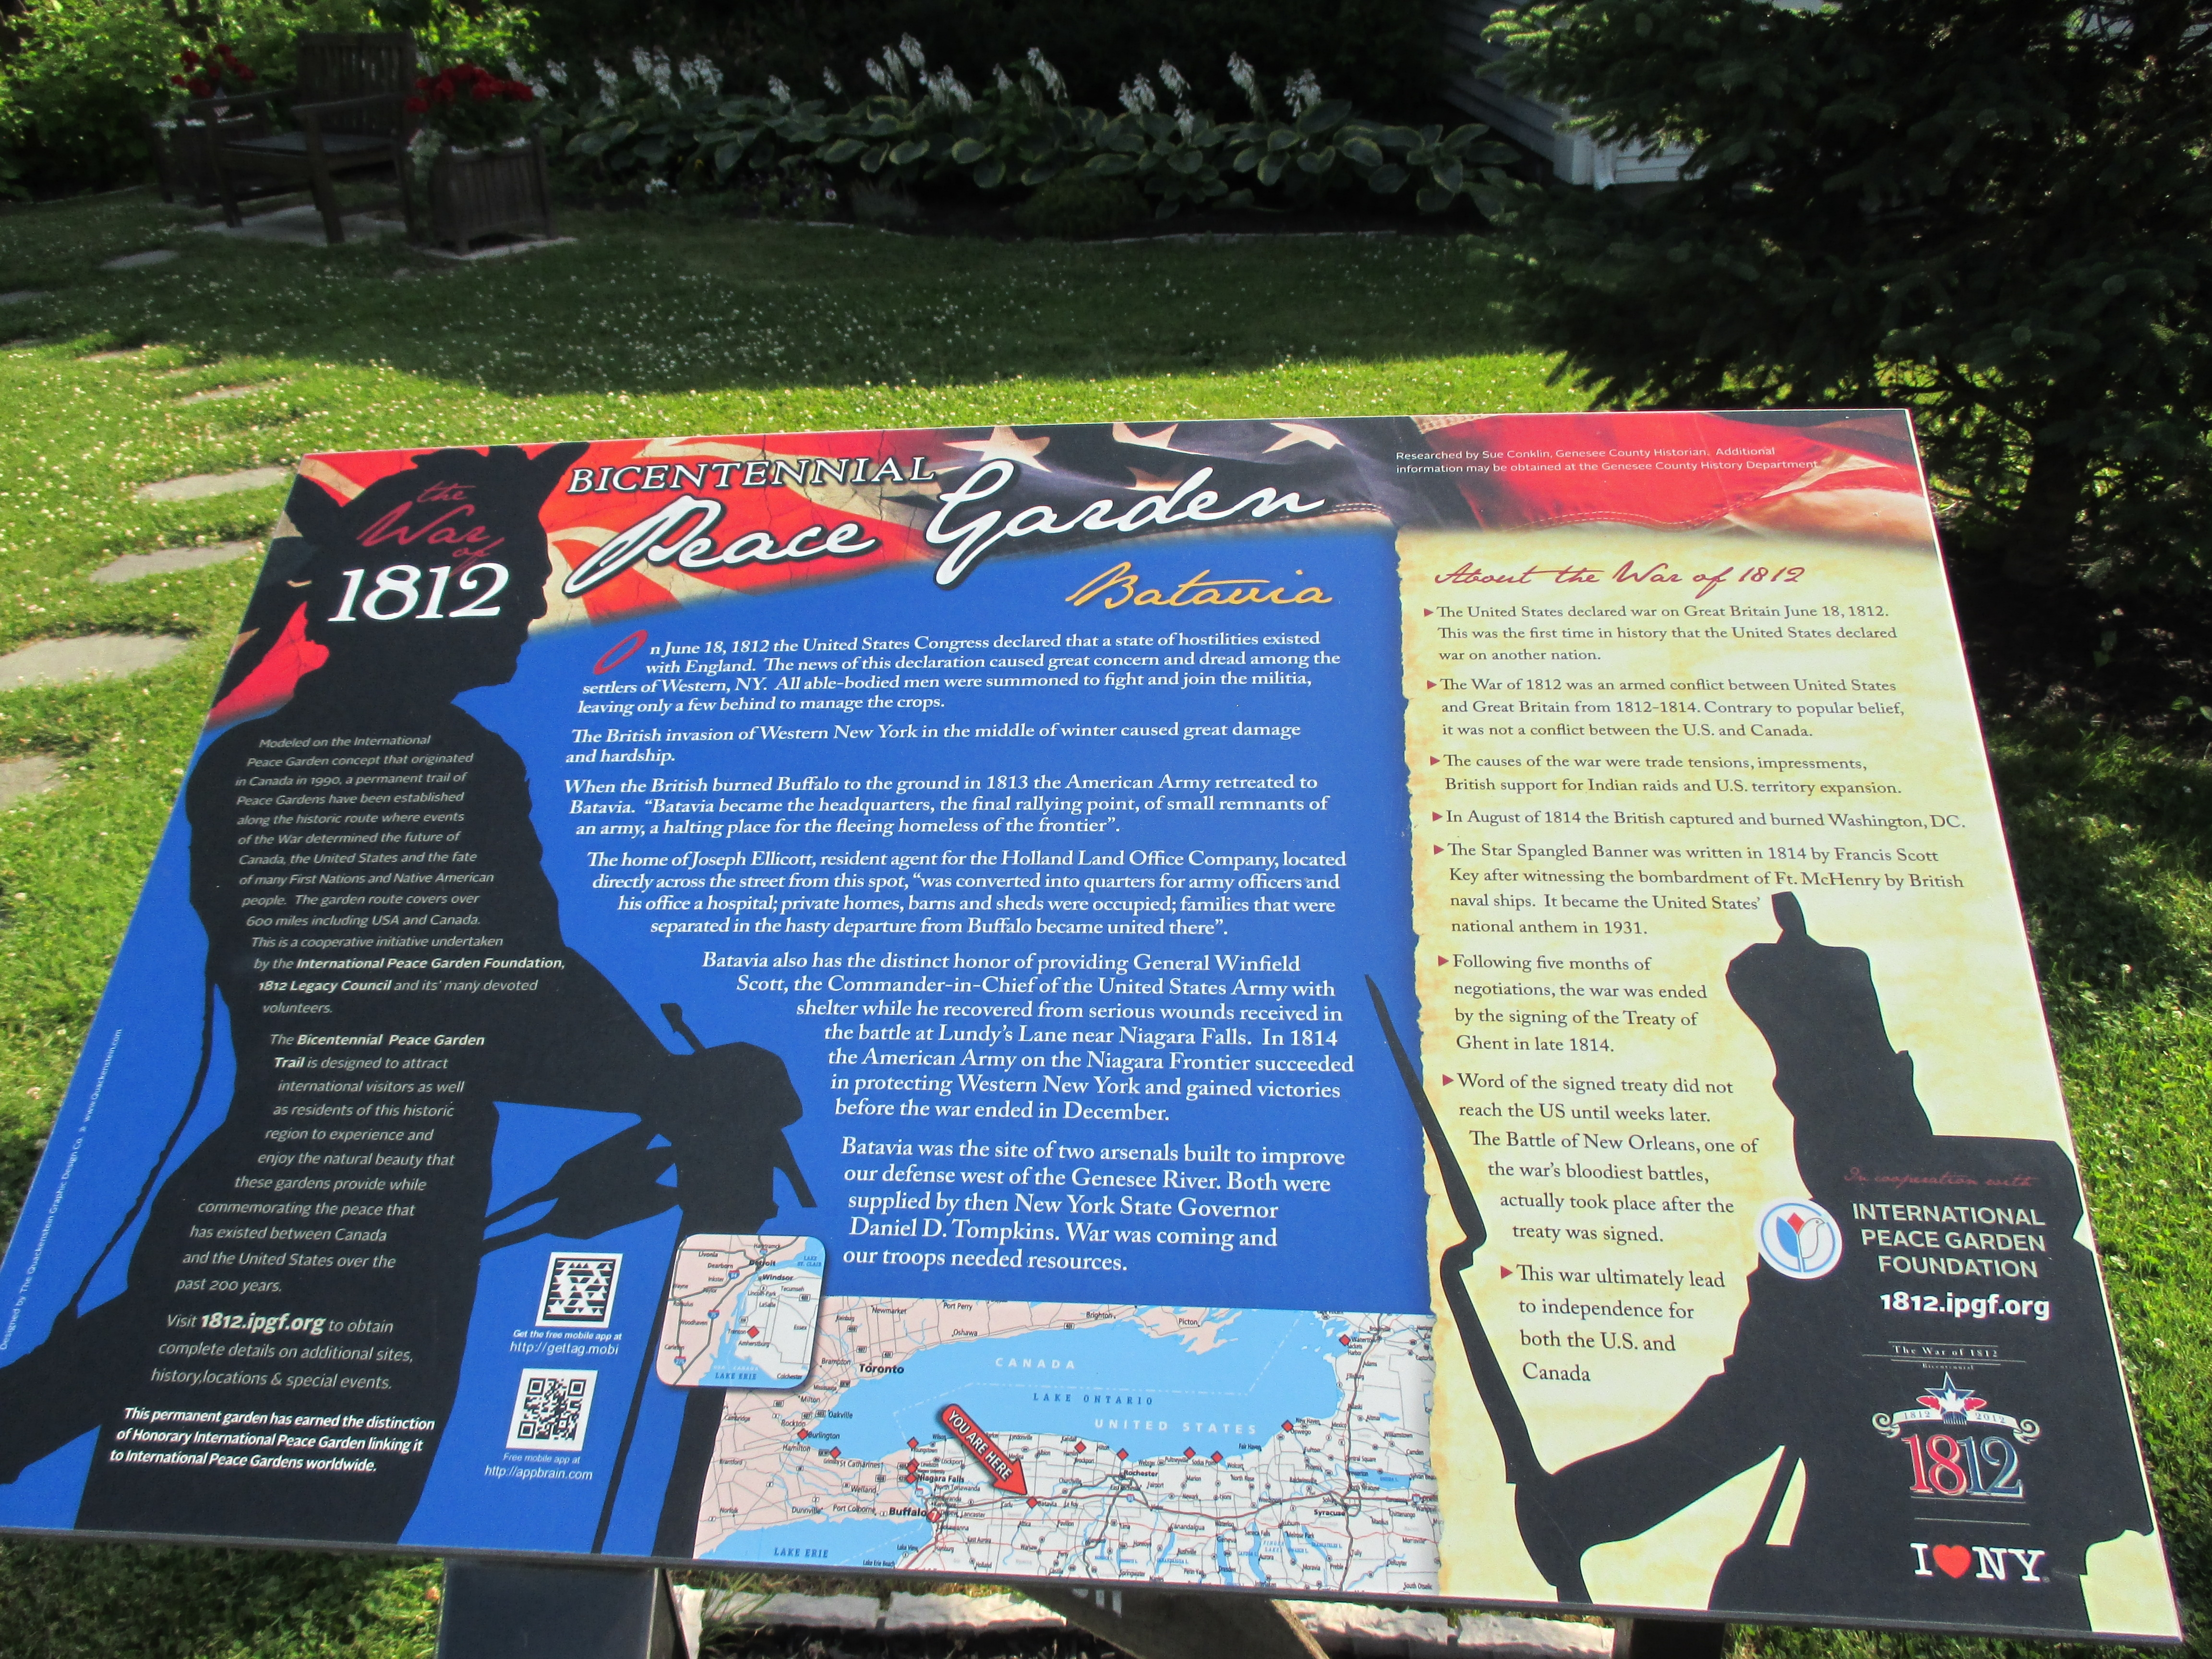 War of 1812 Peace Garden Plaque